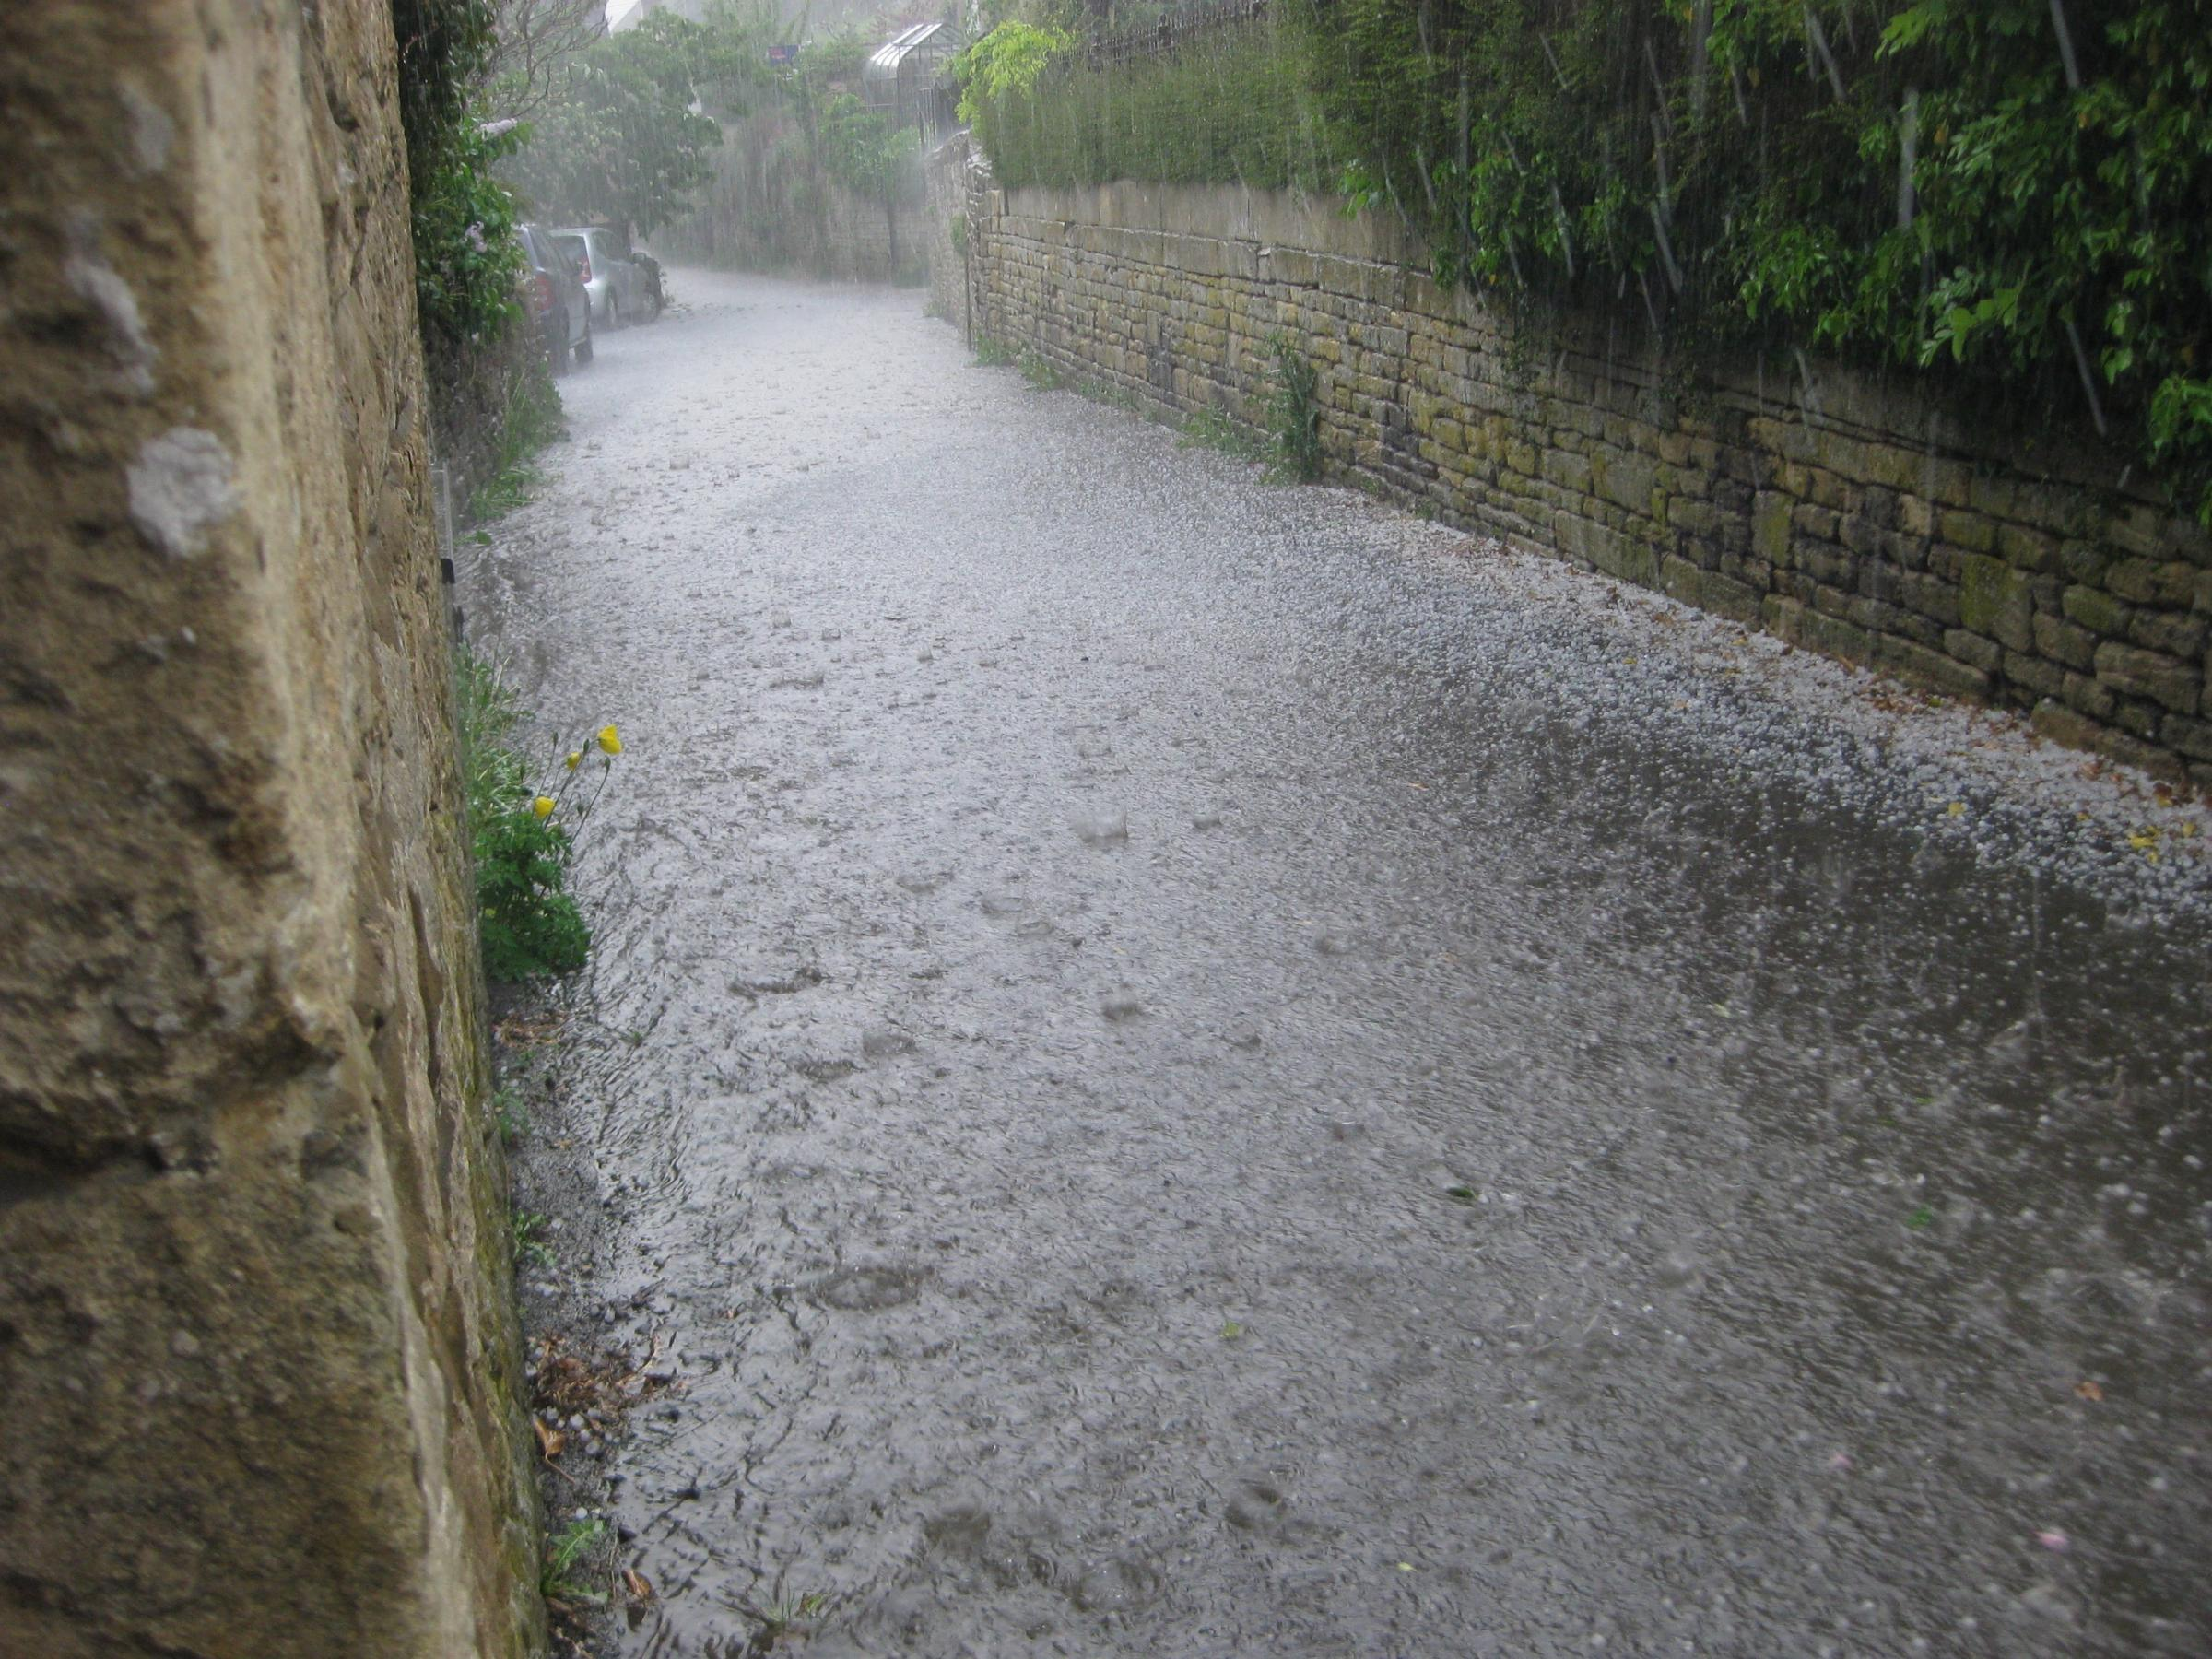 Heavy rain overflowed a manhole cover in Chalford and residents are blaming a recent road resurfacing for the failure of sewage to drain away